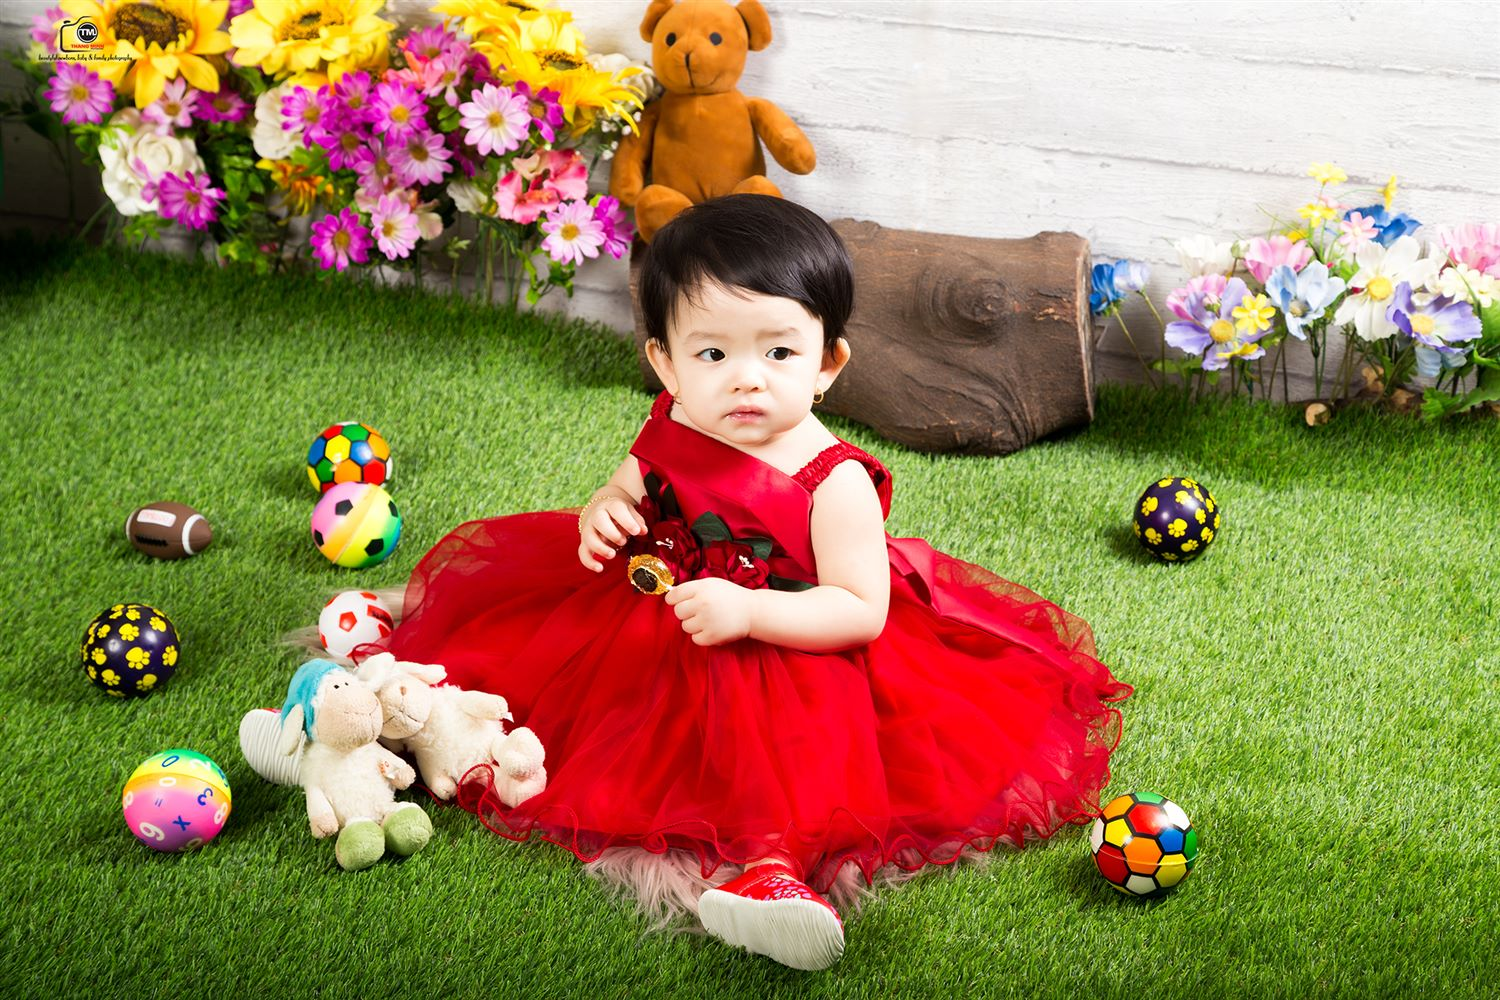 be-phuong-anh-1-tuoi (4)